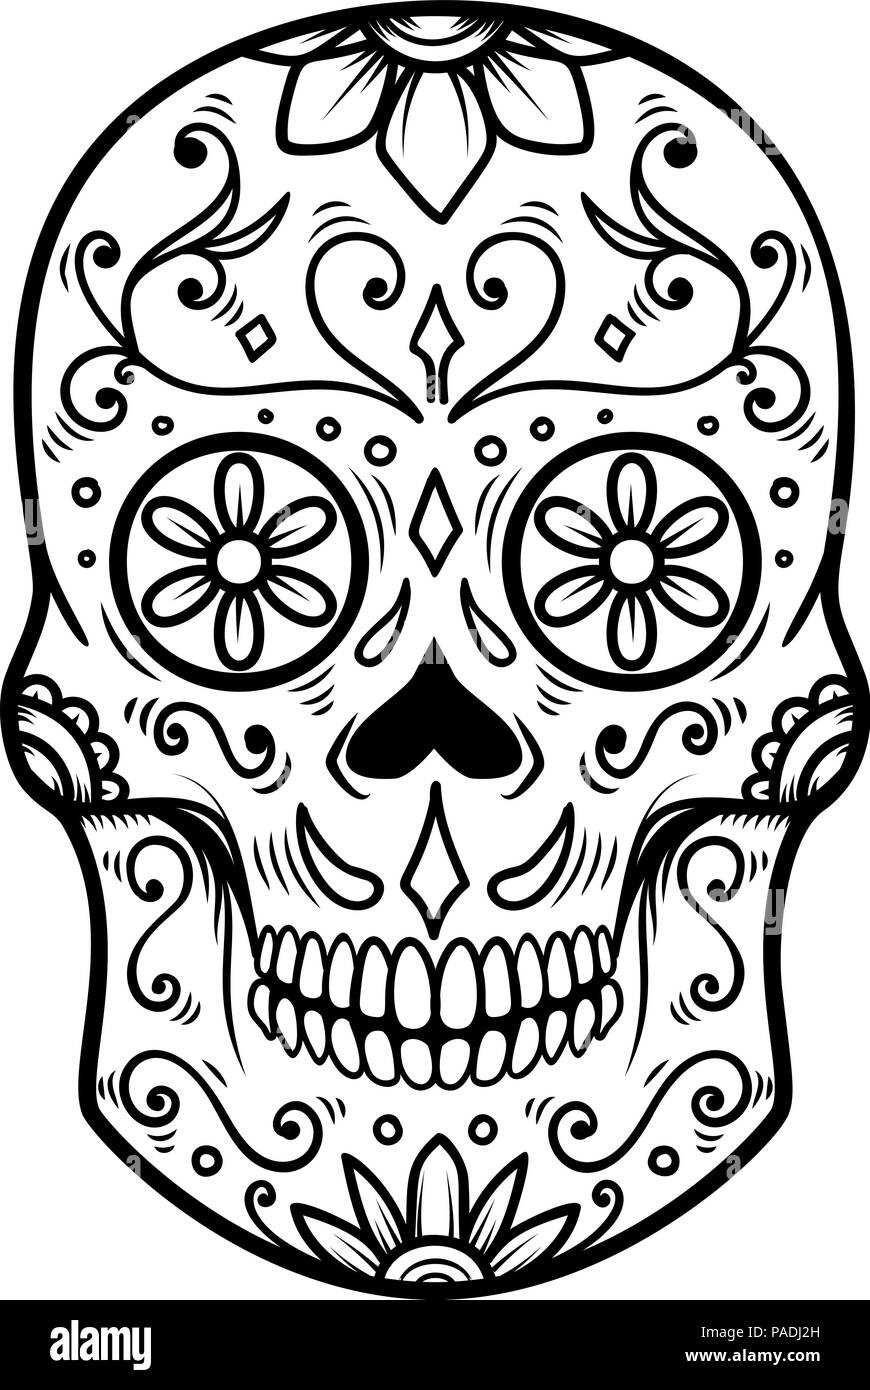 Day Of The Dead Skull Drawing Easy : skull, drawing, Sugar, Skull, Isolated, White, Background., Dead., Muertos., Design, Element, Poster,, Card,, Banner,, Print., Vector, Illustration, Stock, Image, Alamy